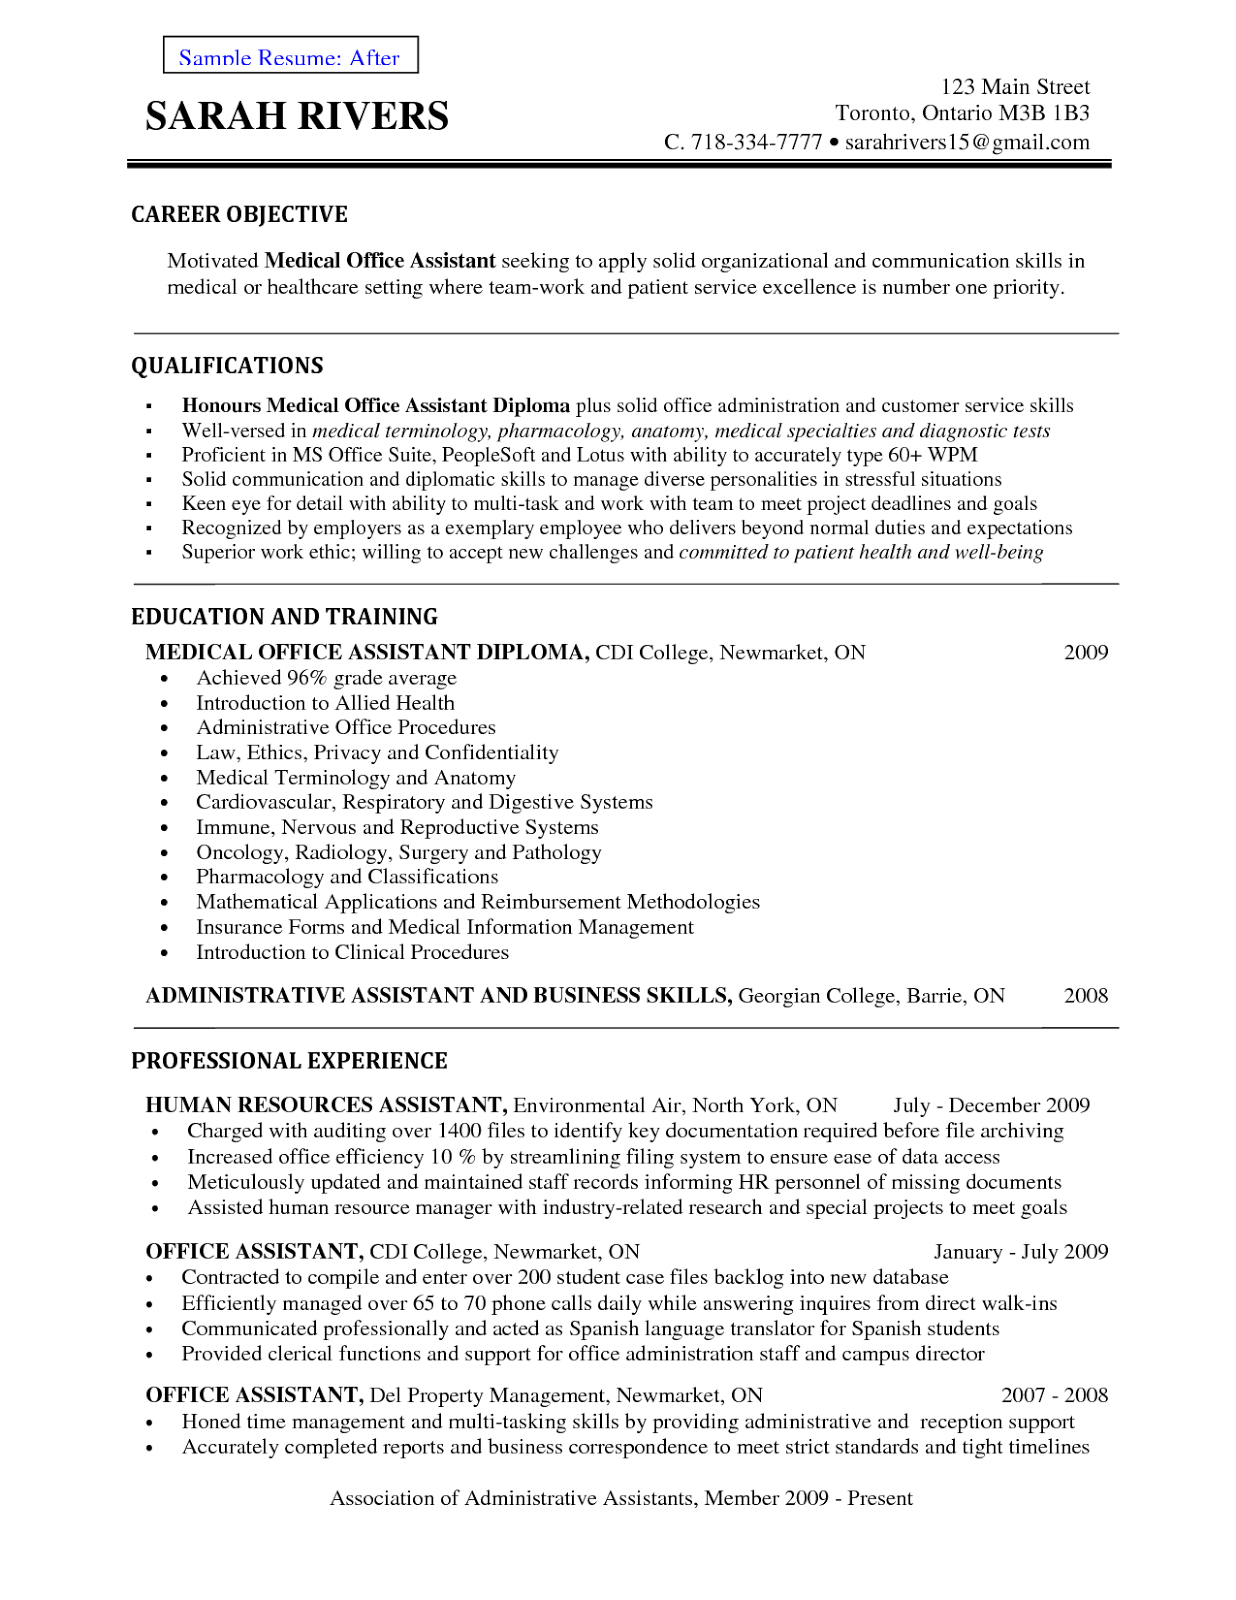 resume opening statement examples healthcare best objective healthcare resumes examples